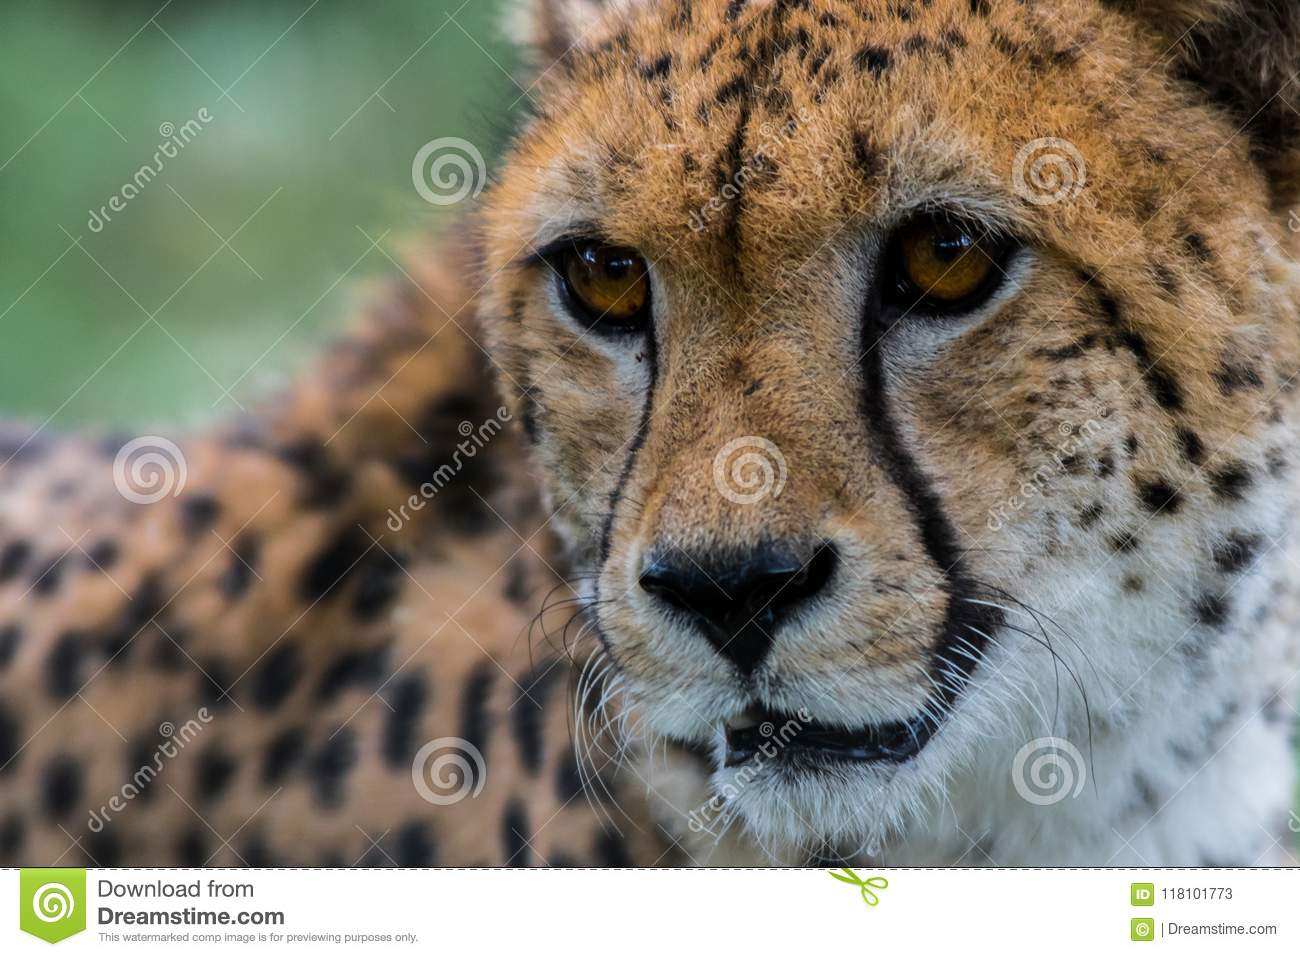 A cheetah stares at something out of shot.